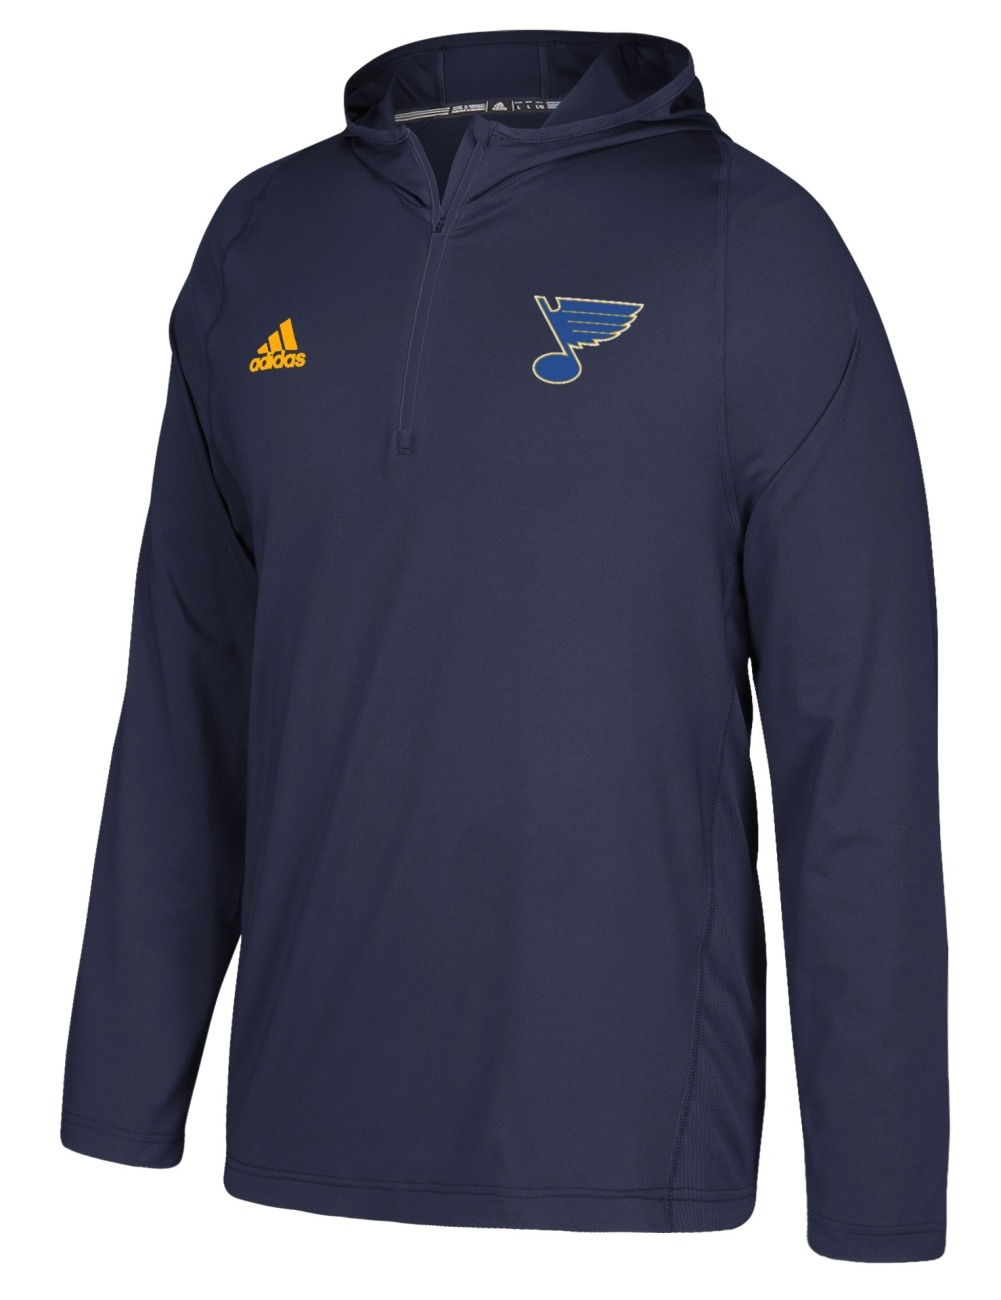 St. Louis Blues Adidas NHL Men's 2017 Authentic Training Hooded Sweatshirt